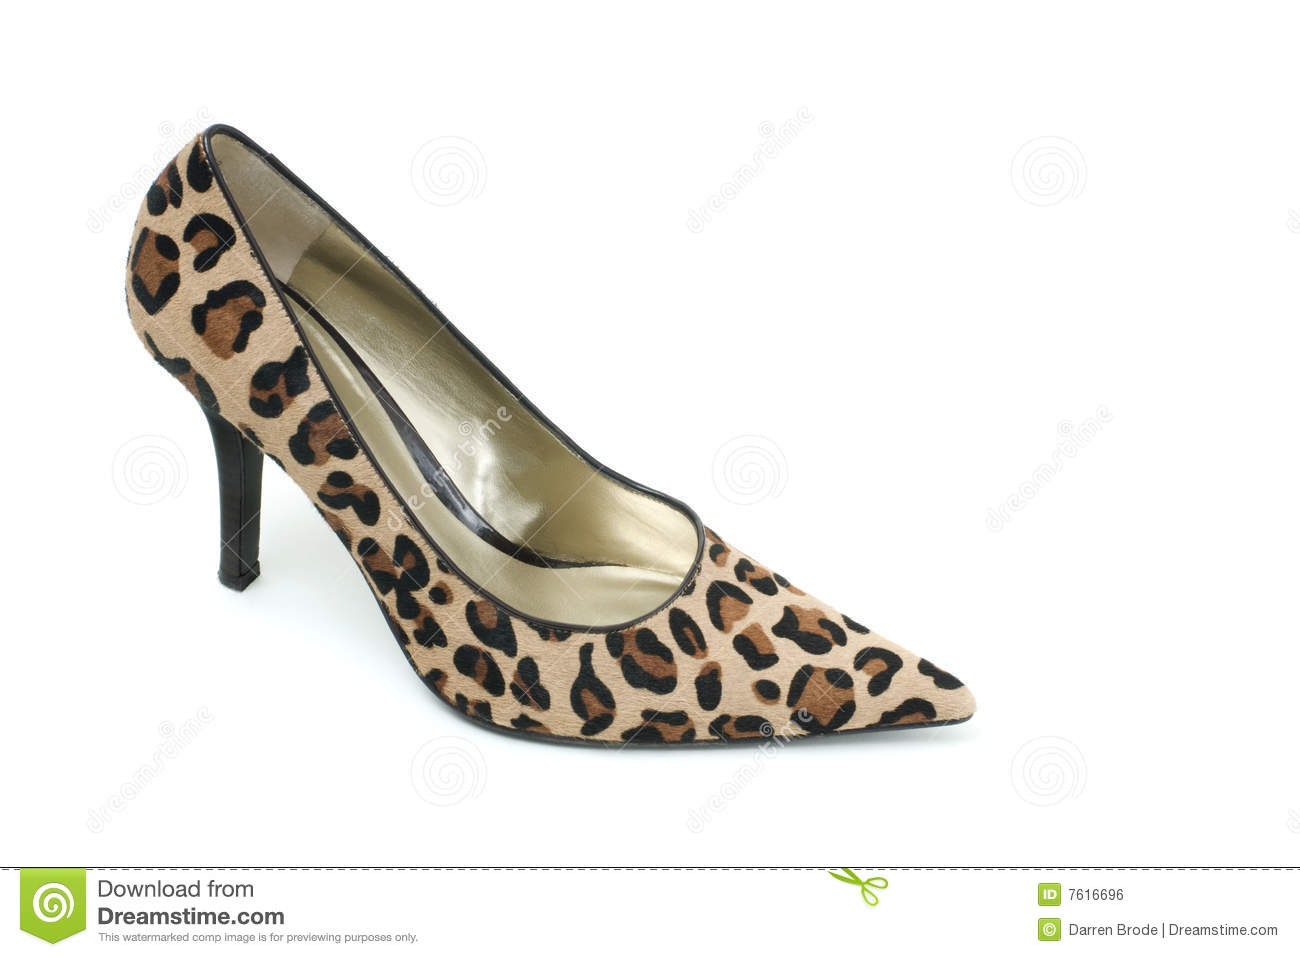 Leopard Print High Heel Shoe Royalty Free Stock Image - Image: 7616696